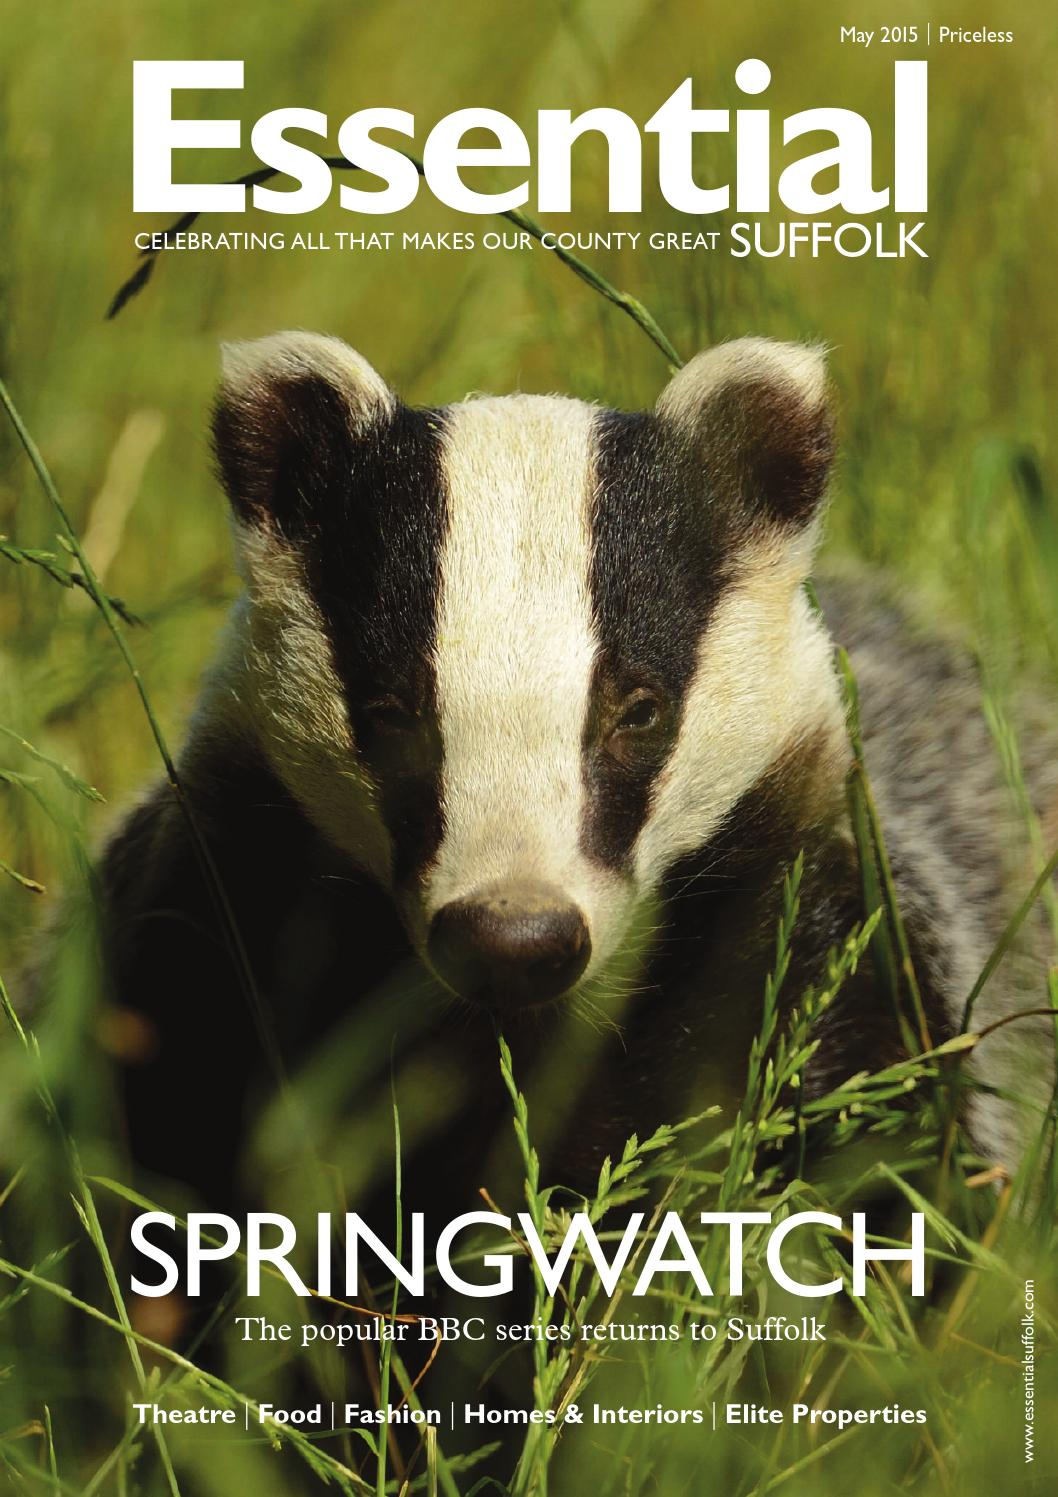 Essential Suffolk May 2015 By Achieve More Media Issuu